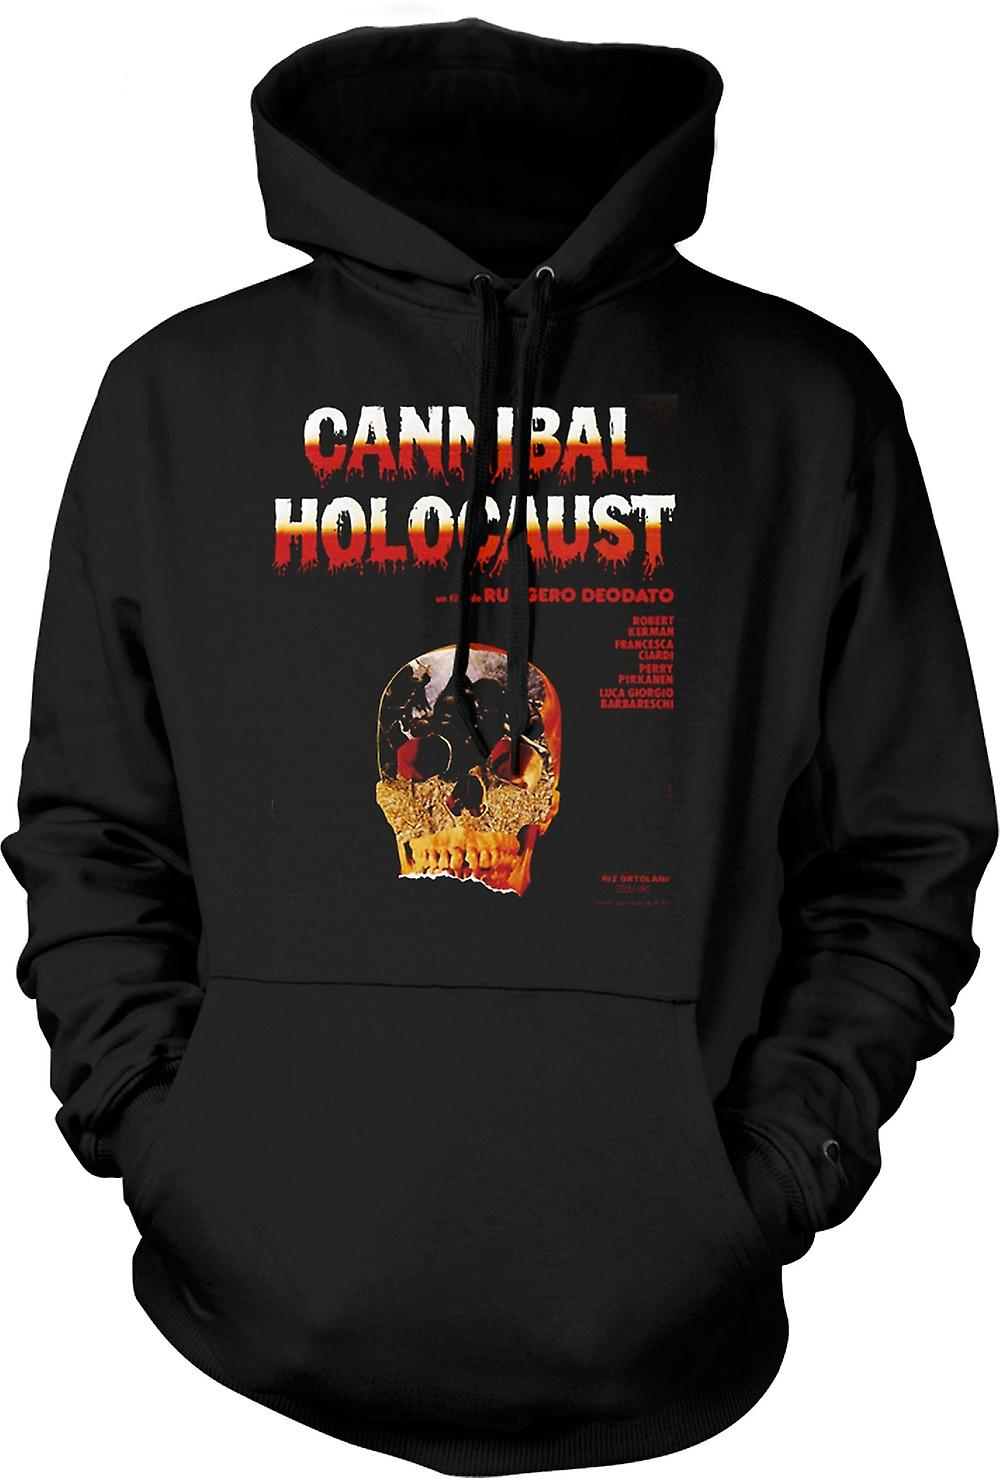 Mens Hoodie - Cannibal Holocaust - Horror - Poster